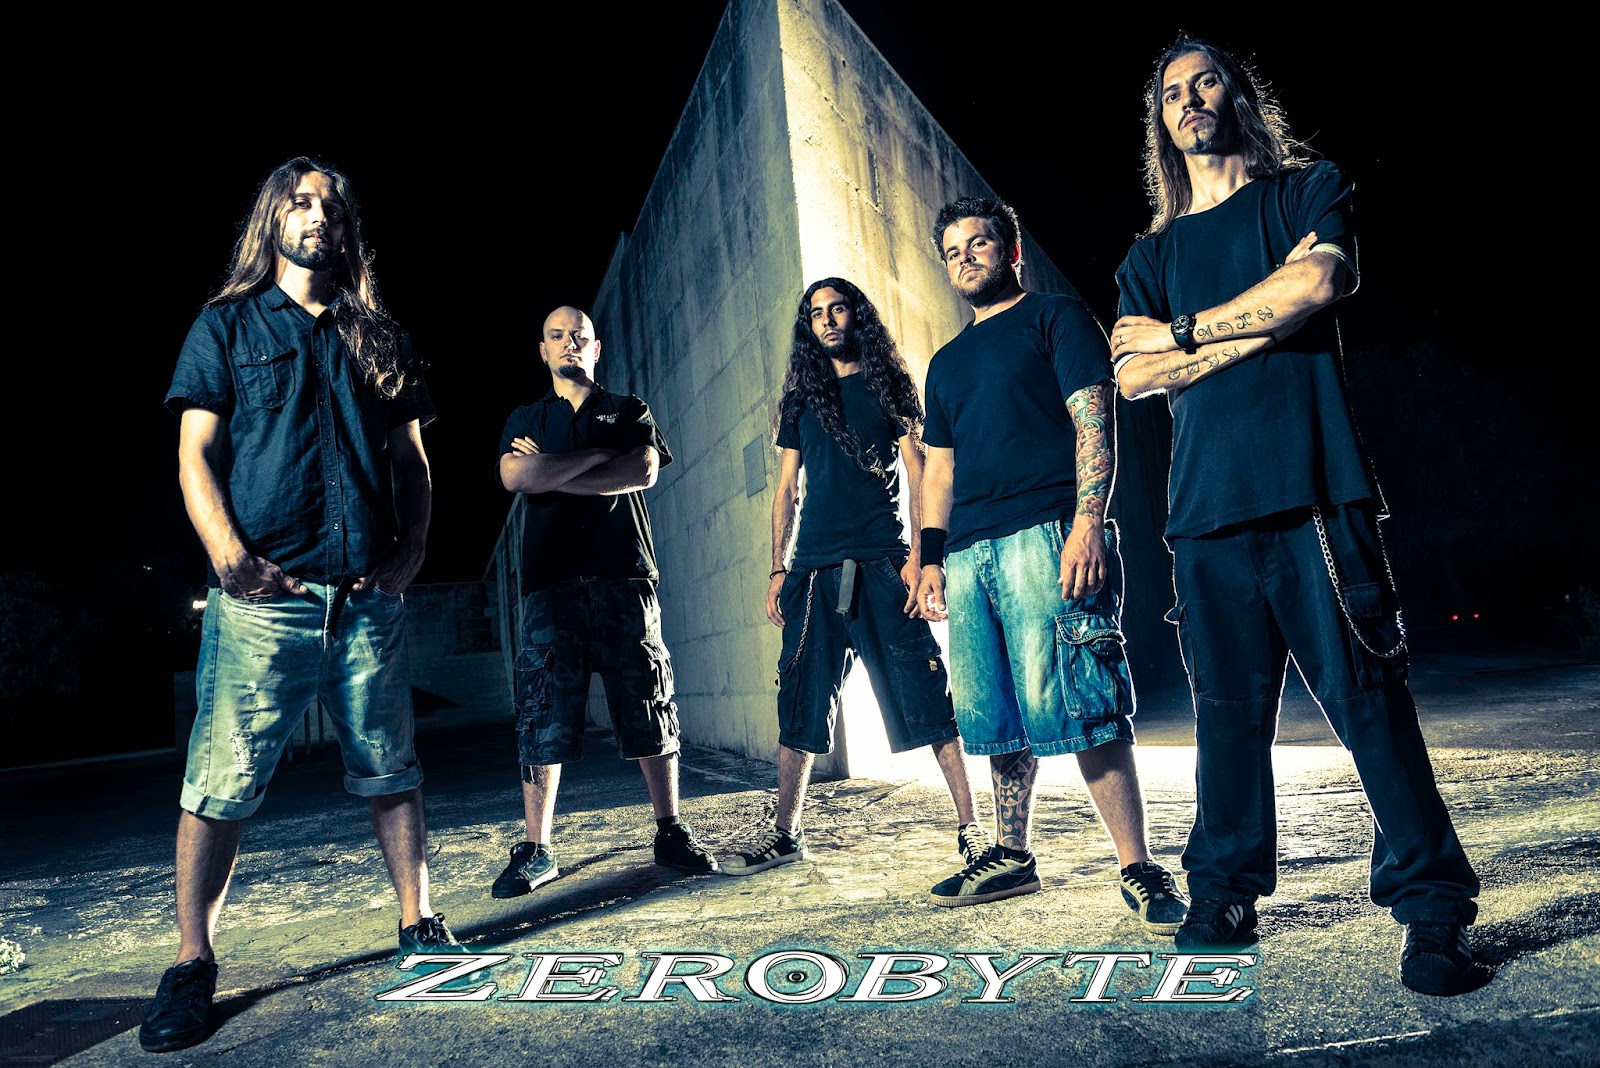 https://www.facebook.com/zerobyte.band